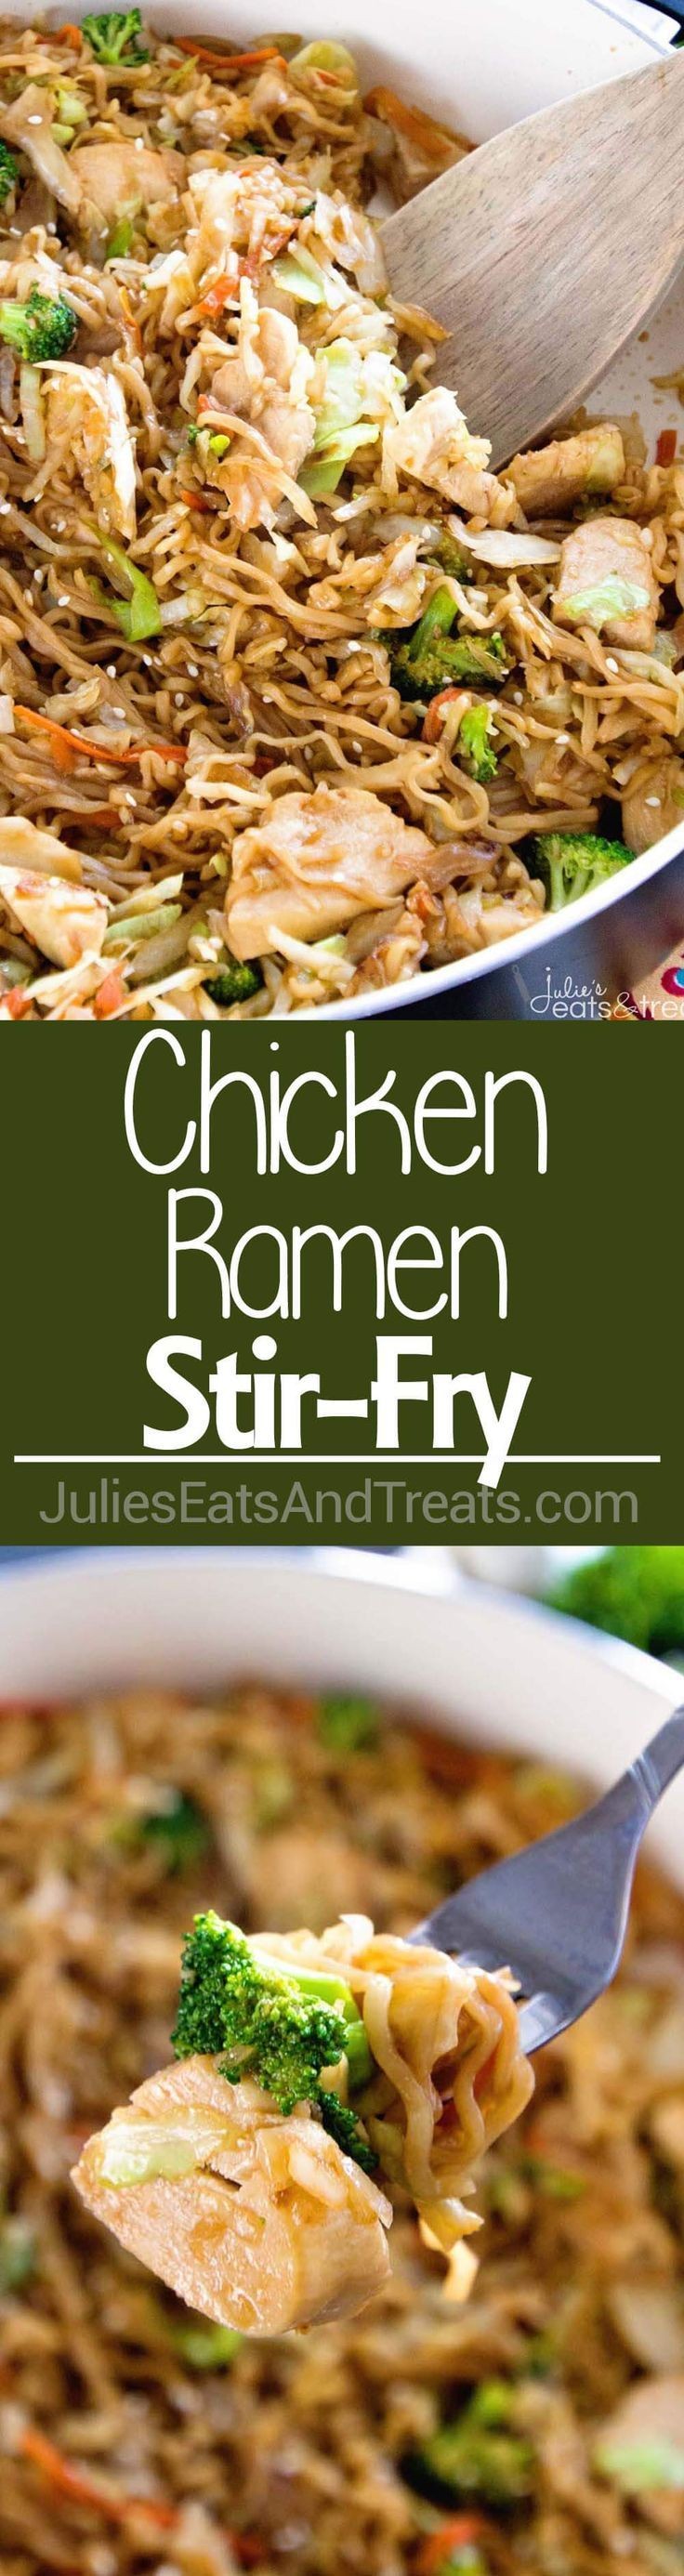 Chicken Ramen Stir-Fry ~ Easy, Delicious Weeknight Meal Loaded with Healthy Ingredients with the Addition of Ramen for a Fun Twist! On the Table in 30 Minutes! ~ http://www.julieseatsandtreats.com